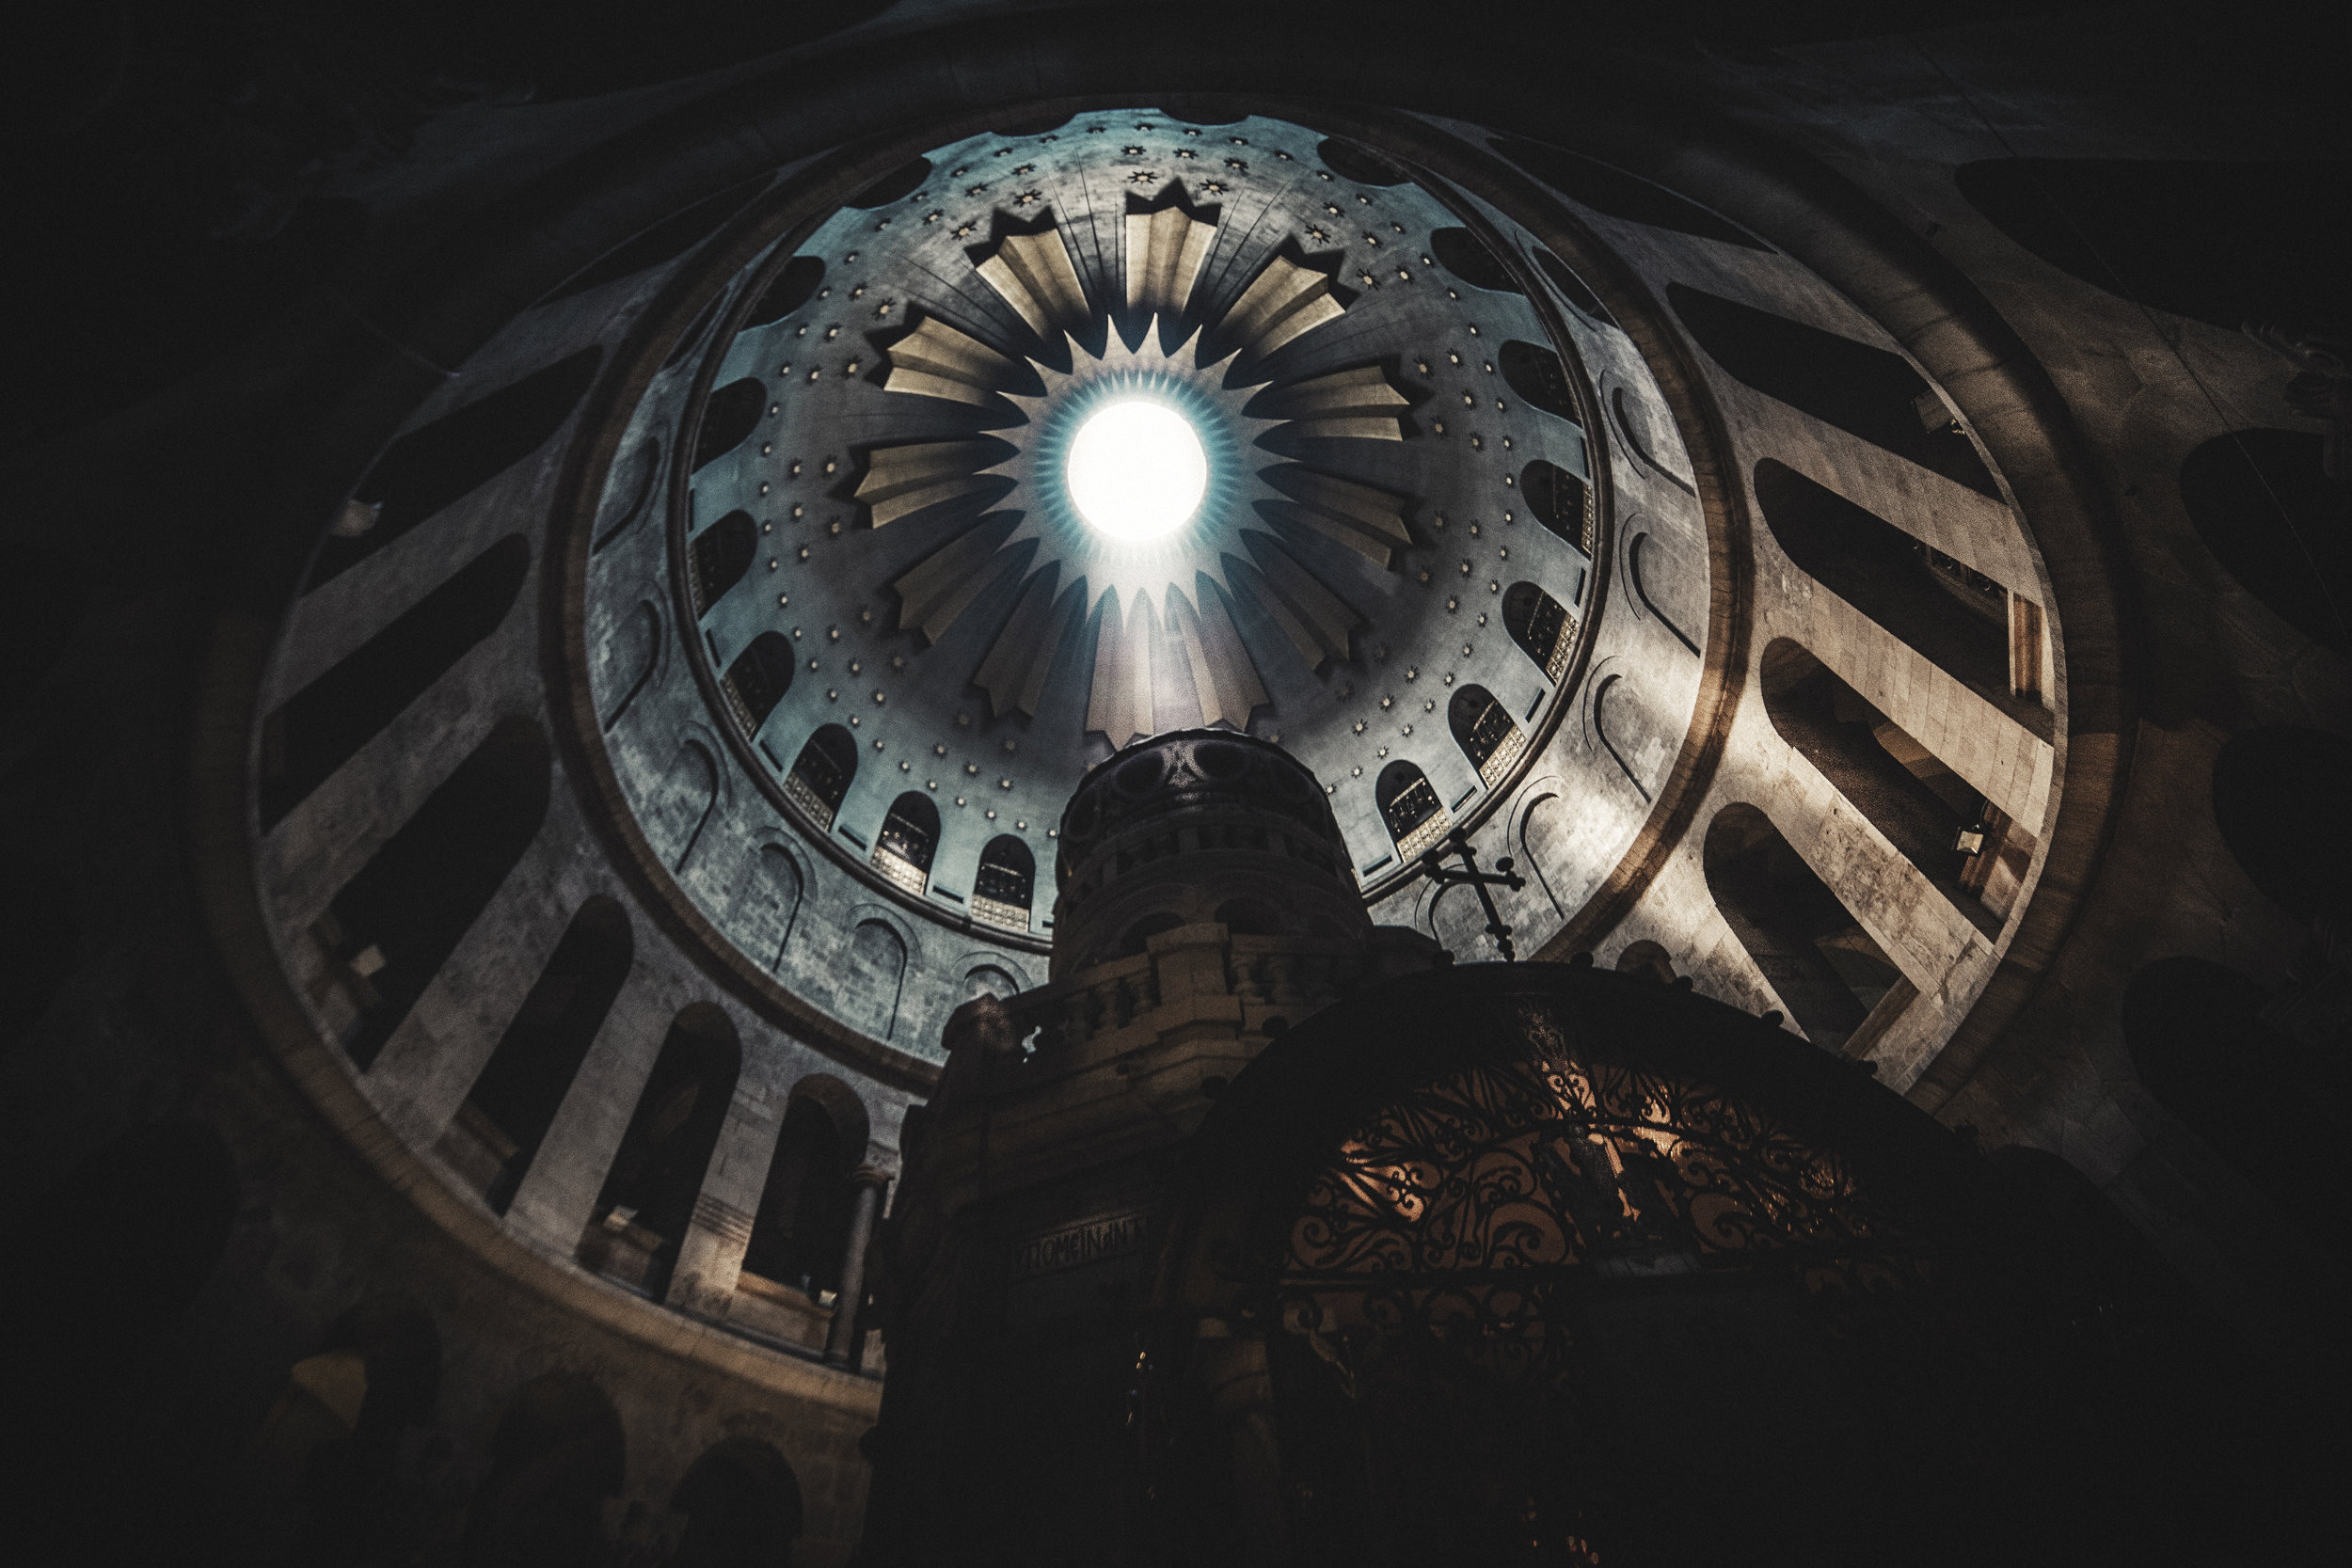 Tomb of Christ - The Church of the Holy Sepulchre